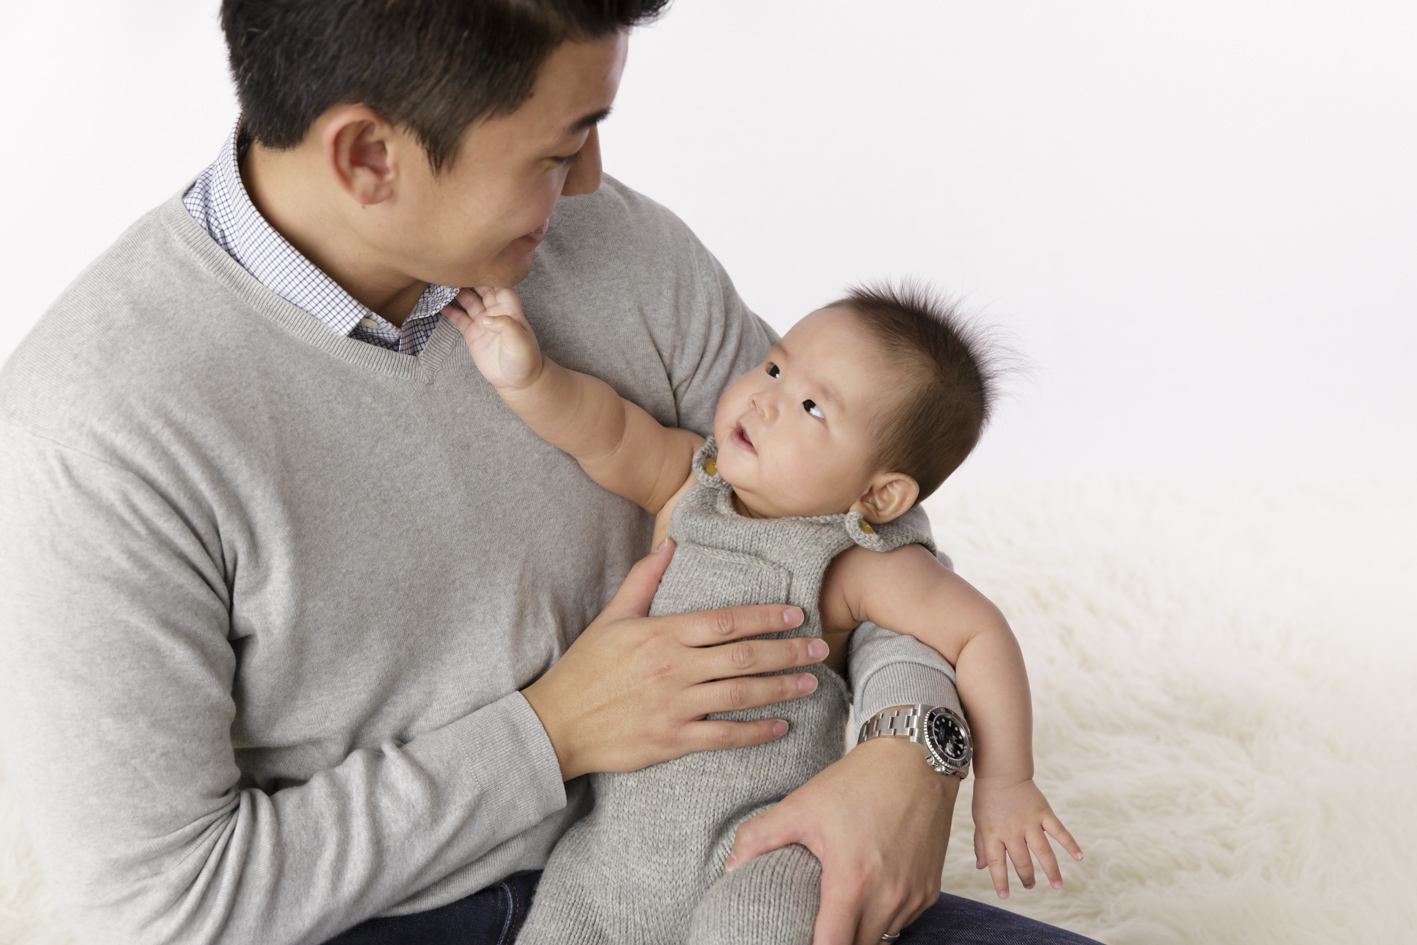 baby touching dads face